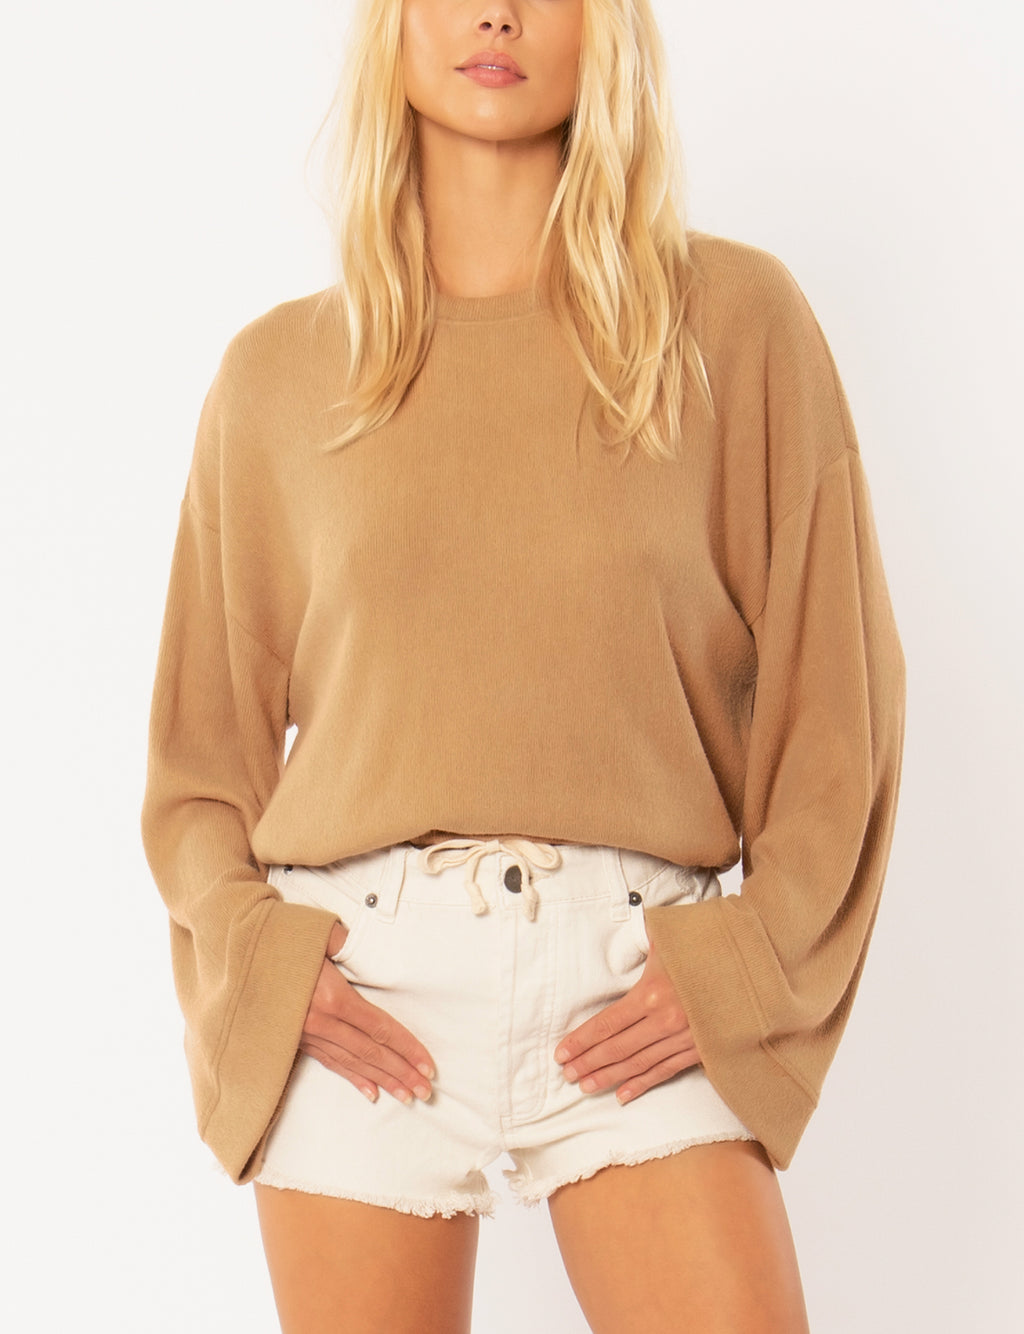 Amuse Society Cosi L/S Knit Fleece Top in Mocha